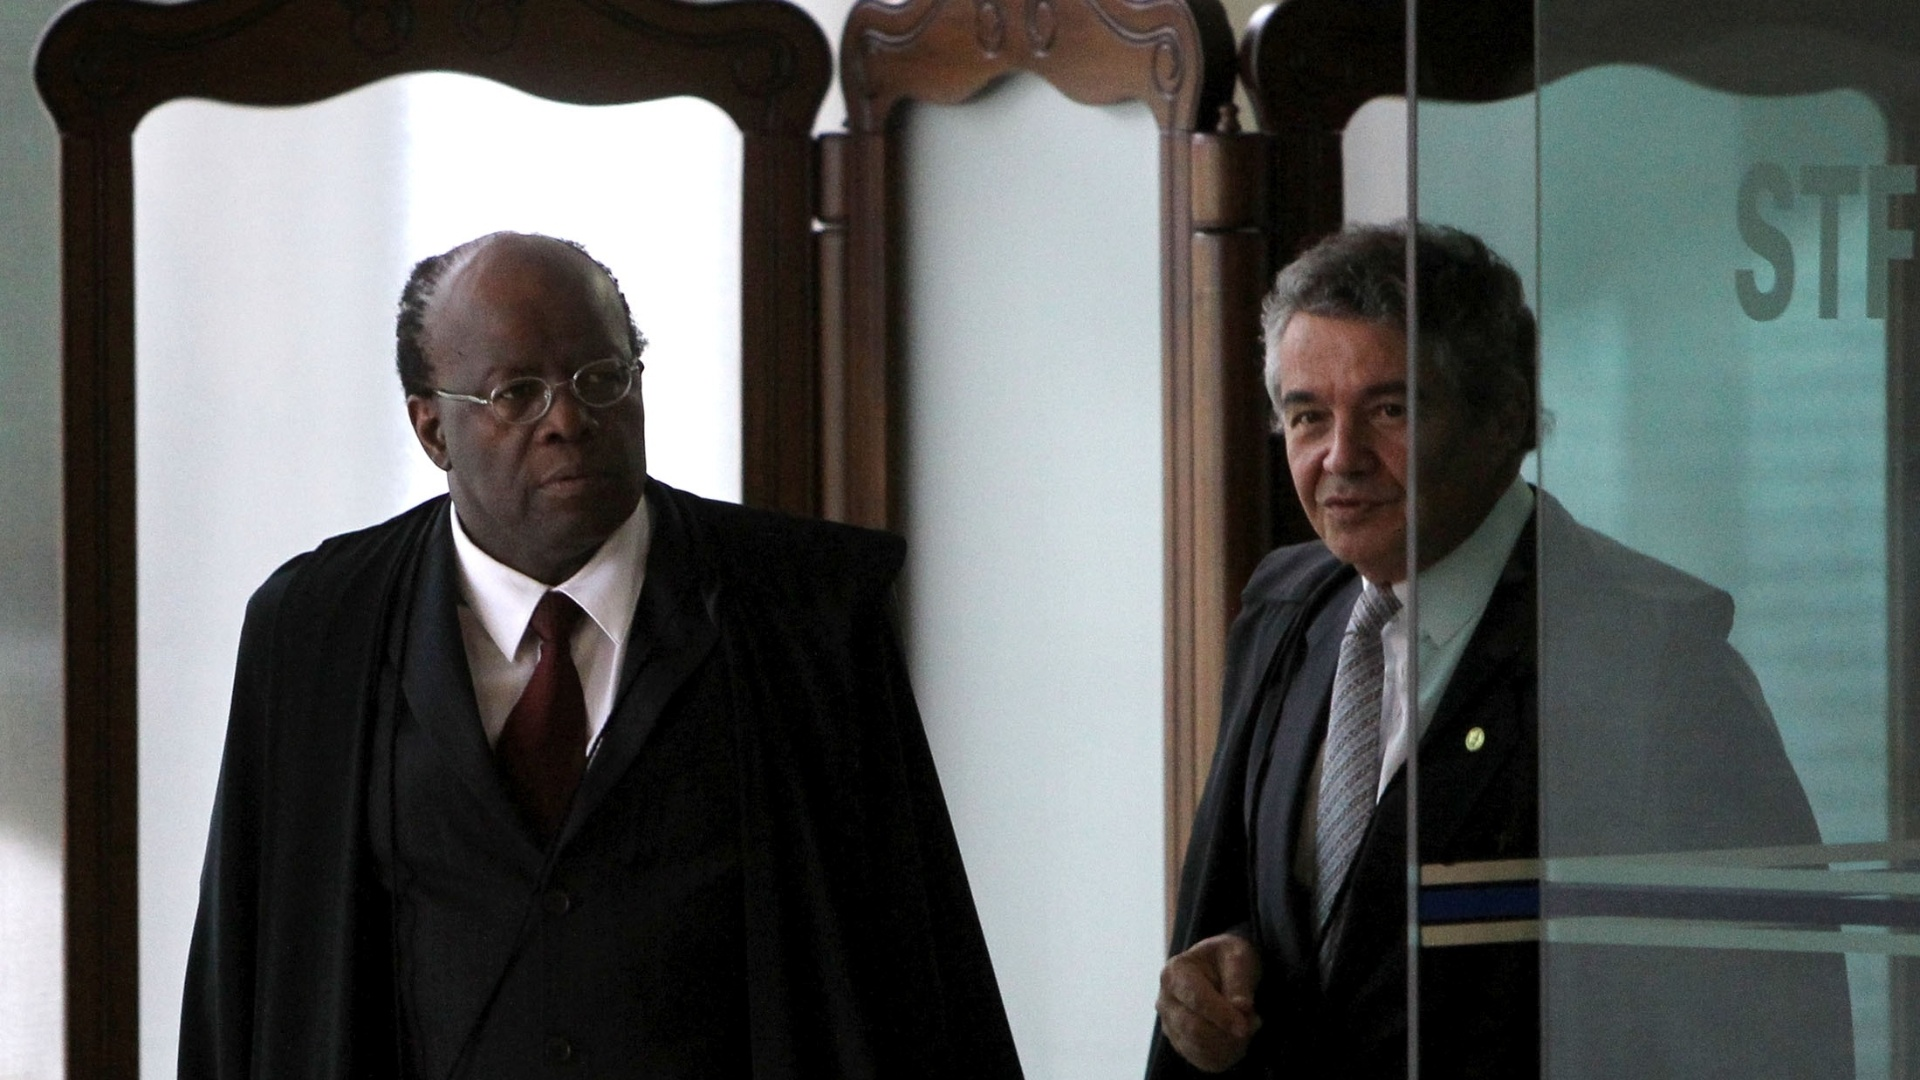 28.nov.2012 - Os ministros Joaquim Barbosa e Marco Aurlio voltam ao plenrio do STF (Supremo Tribunal Federal) para mais uma sesso de julgamento do mensalo. Nesta quarta-feira, os ministros do STF fixaram a pena do ex-deputado federal Roberto Jefferson (PTB-RJ), delator do esquema, em 7 anos e 14 dias de priso, por corrupo passiva e lavagem de dinheiro